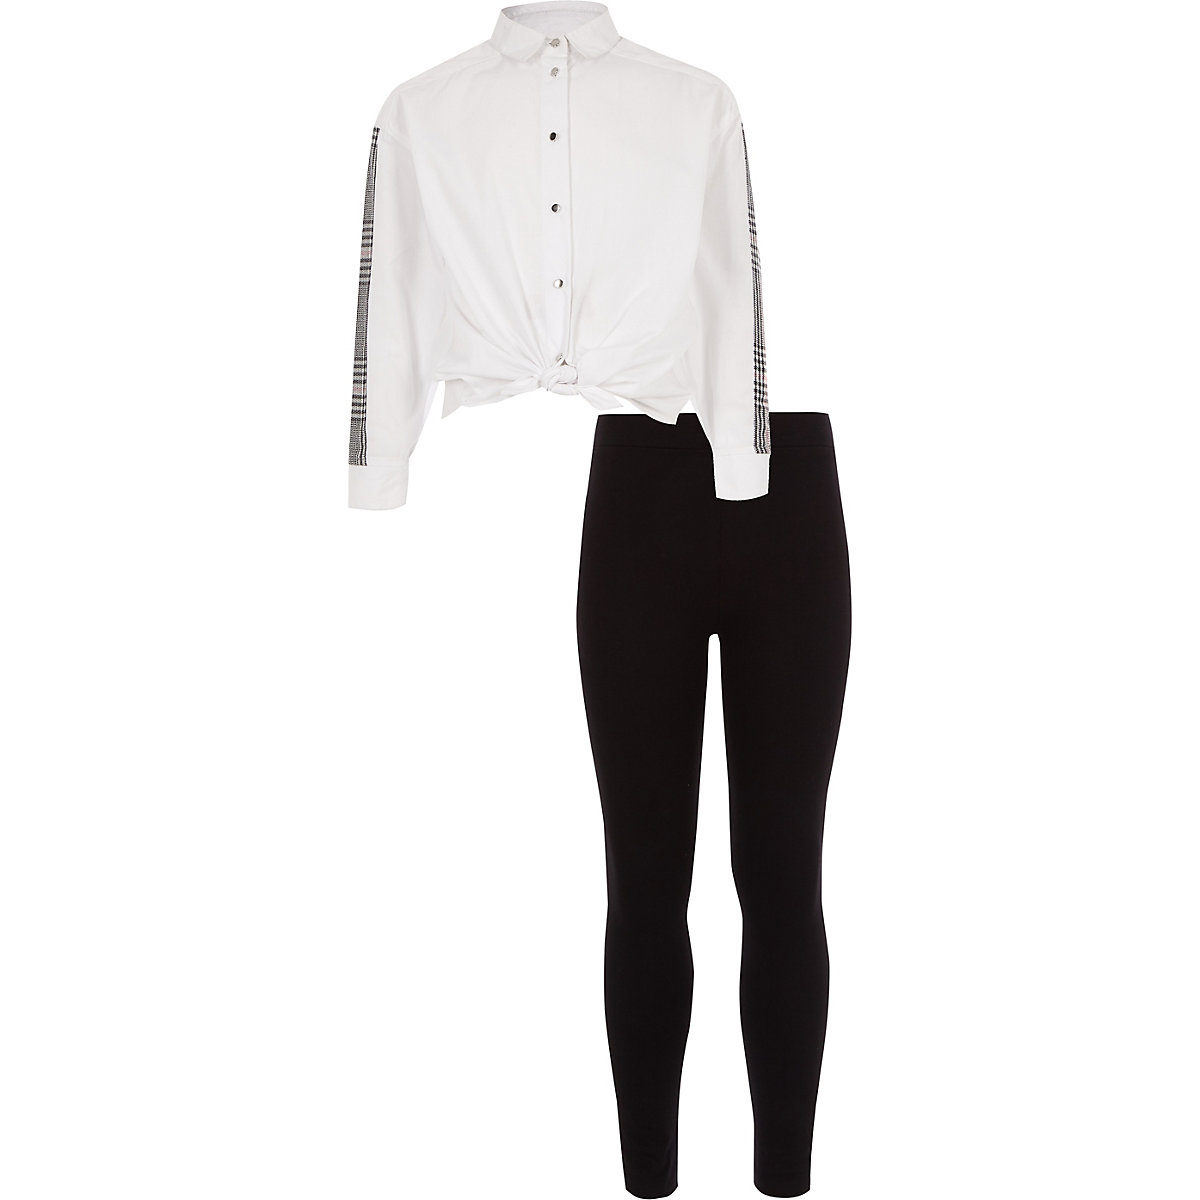 Girls white check side tie shirt outfit